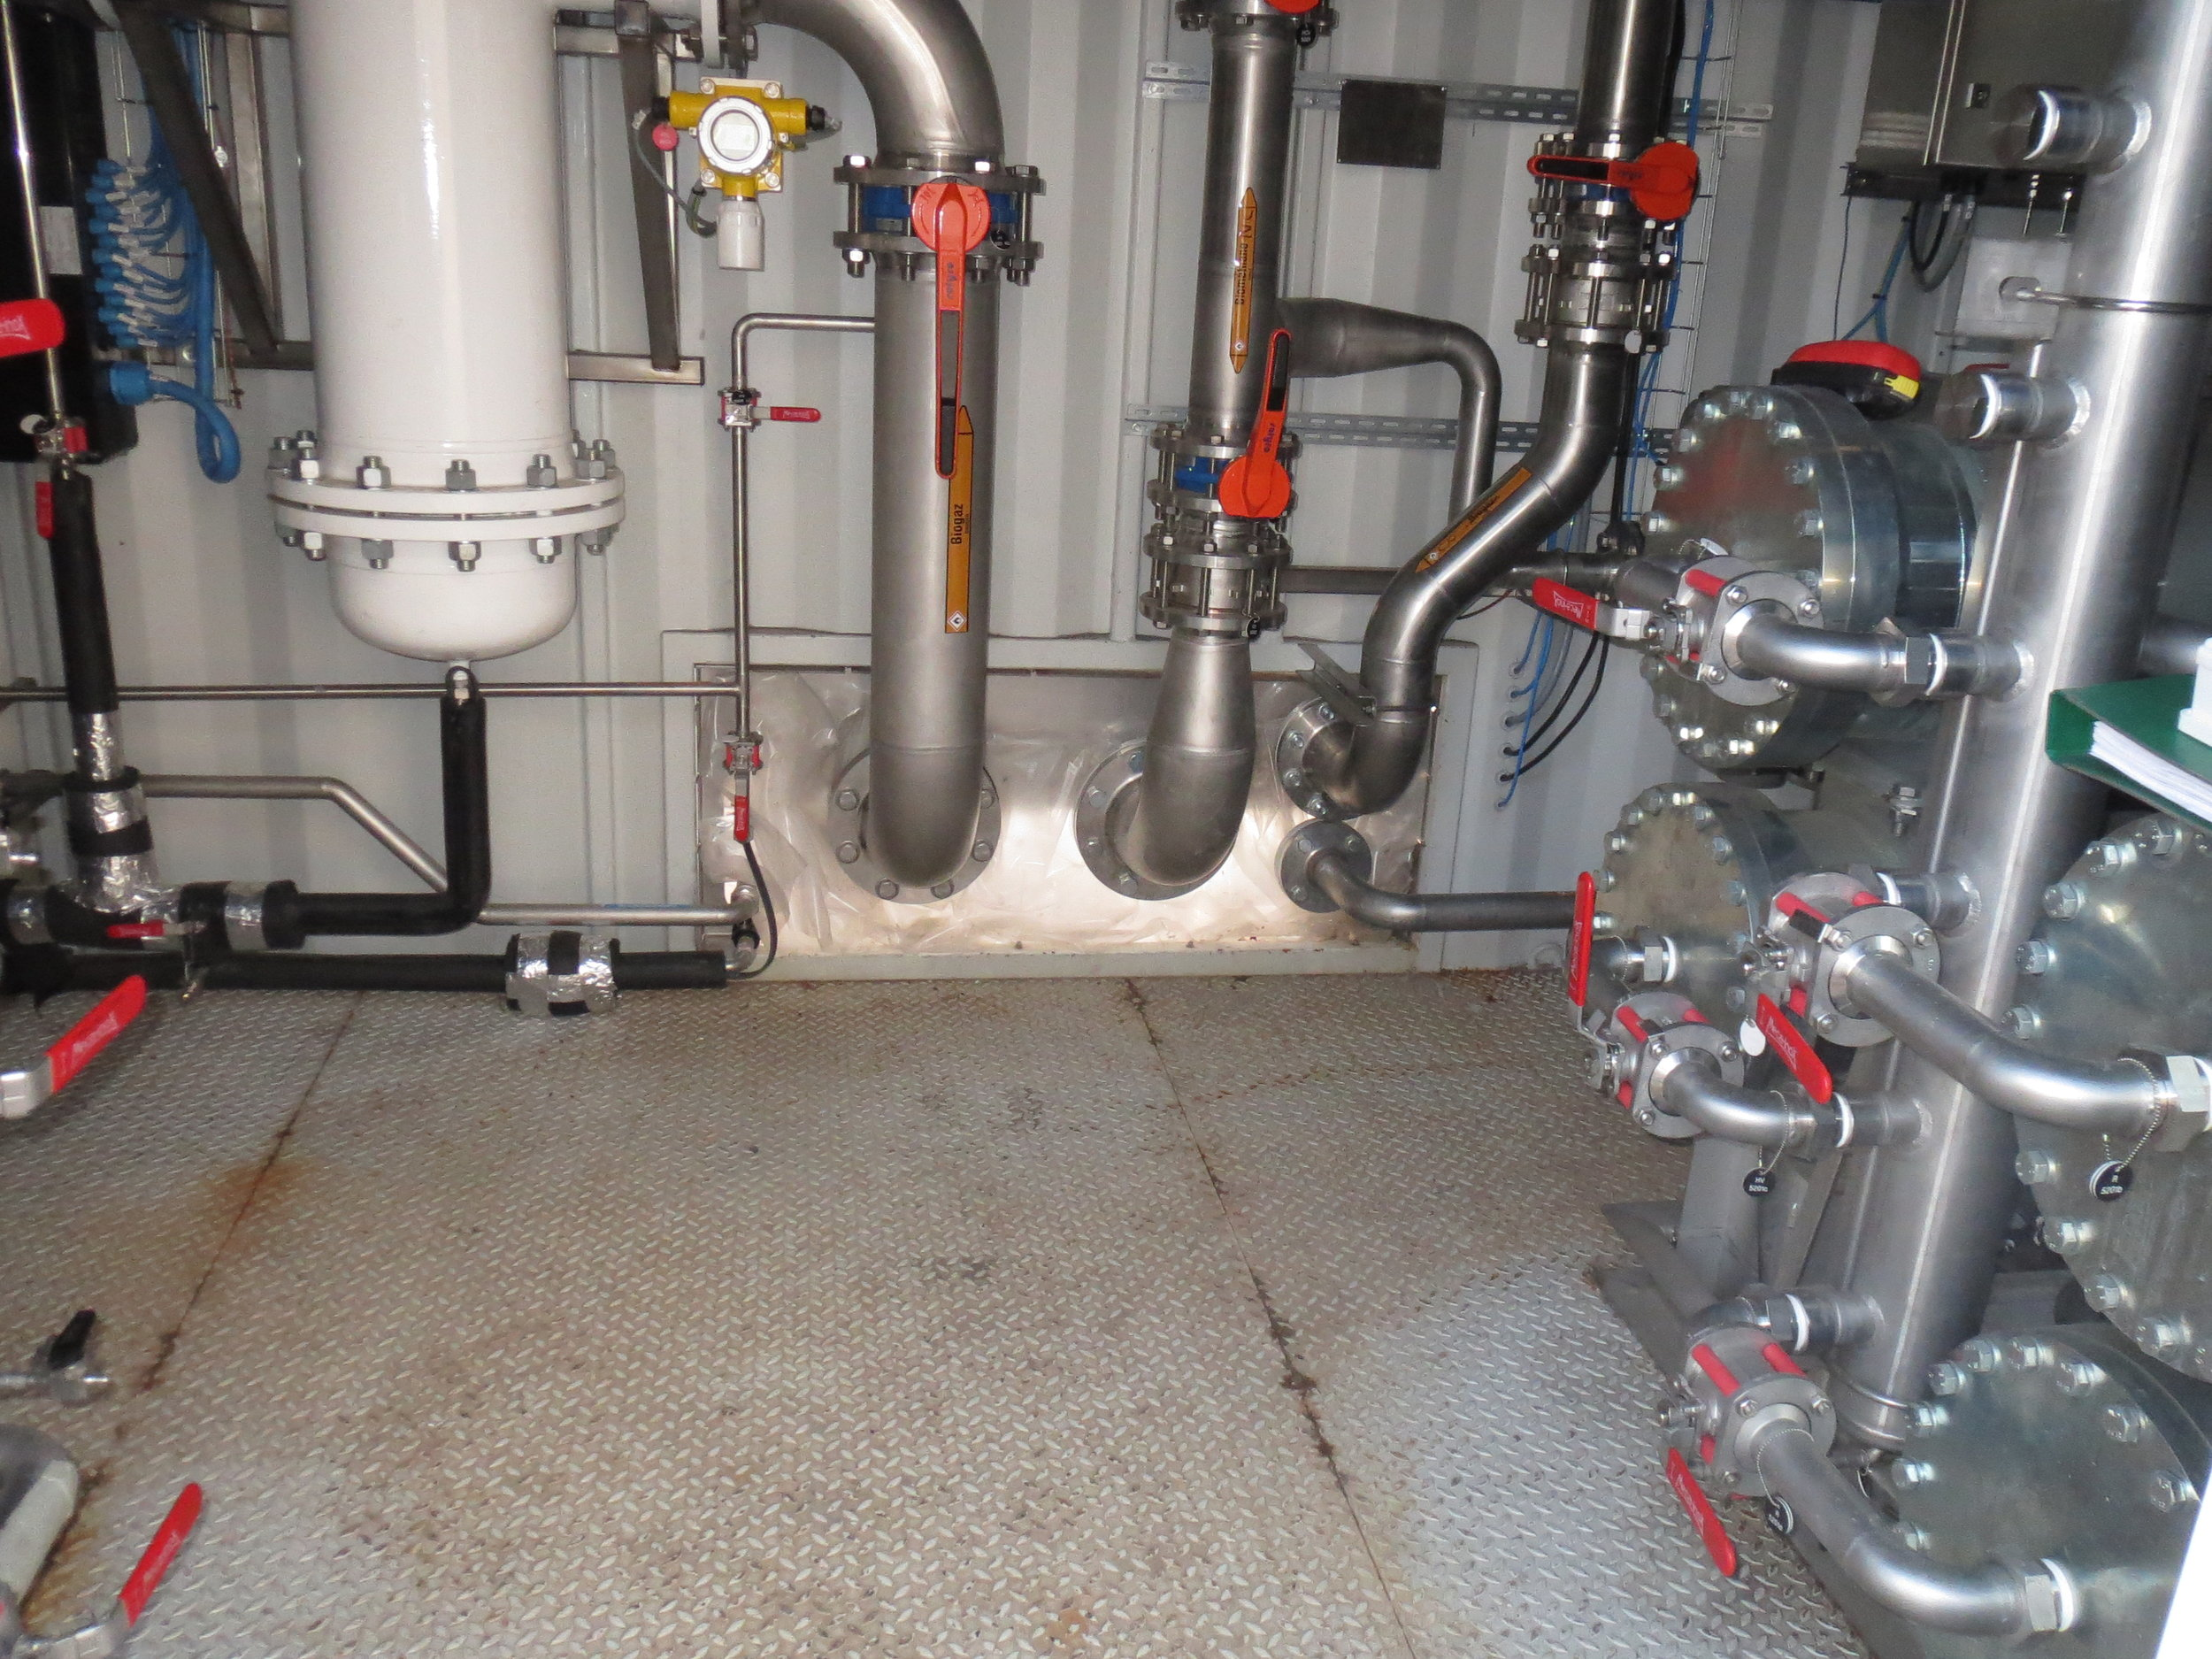 AD plant pipe work